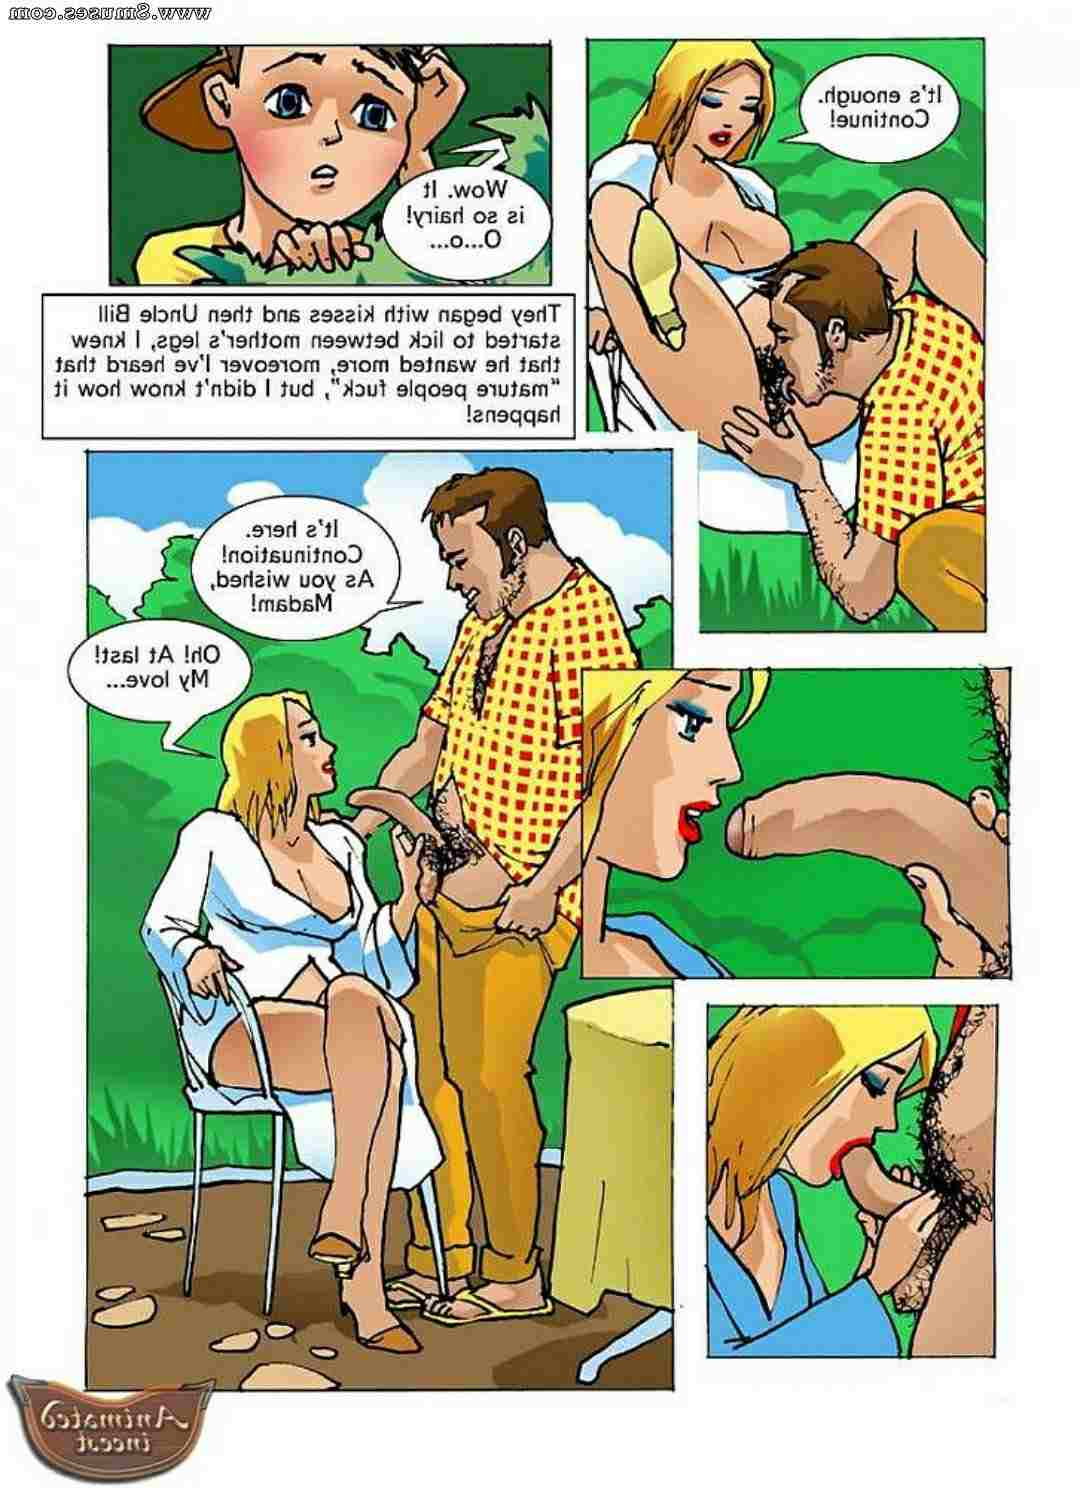 Animated-Incest-Comics/He-saw-everything He_saw_everything__8muses_-_Sex_and_Porn_Comics_3.jpg